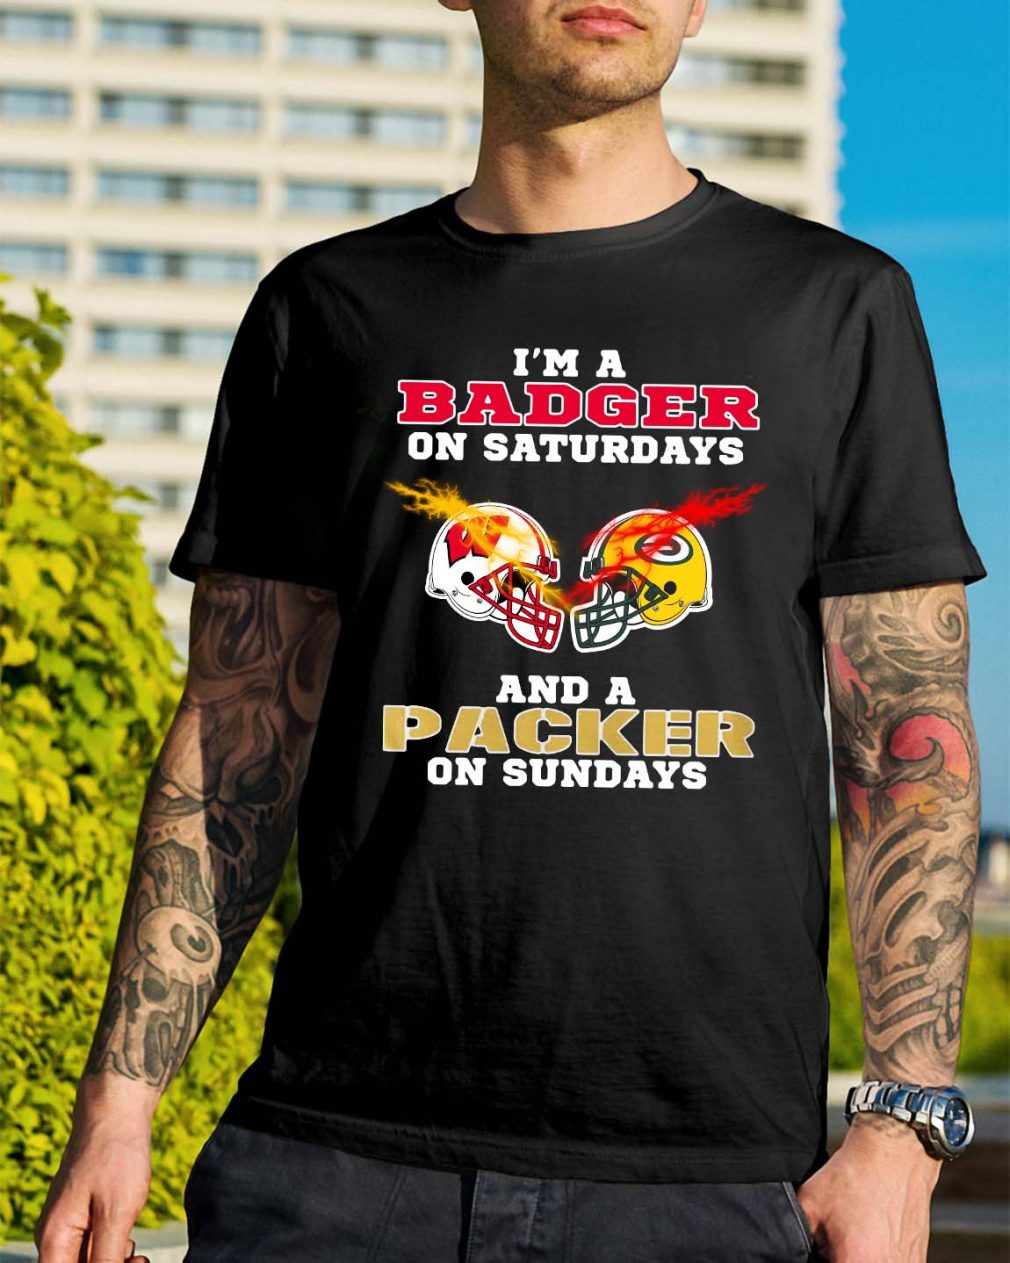 I'm a Badger on Saturdays and a Packer on Sundays shirt